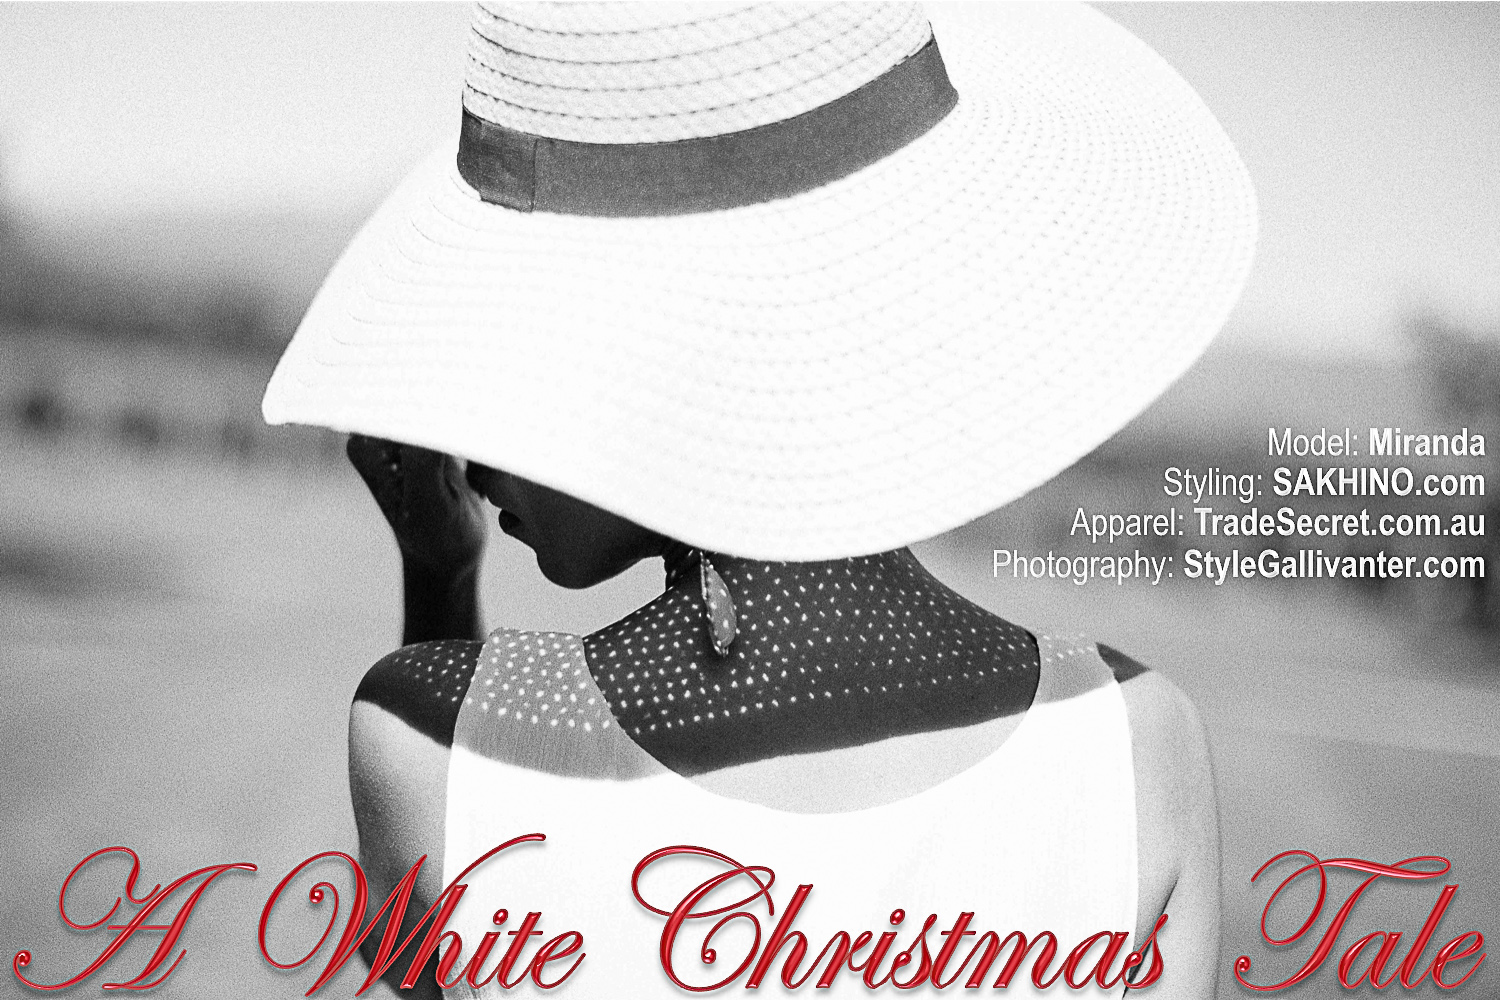 rade-secret-dresses_floppy-summer-hats_white-christmas-editorials_CLASSIC-FASHION-EDITORIALS_BLACK-AND-WHITE-FASHION-EDITORIALS_BEST-BLACK-AND-WHITE-PHOTOGRAPHY_TRADE-SECRET-BLOGGER_TRADE-SECRET-BLOG_TRADE-SECRET-FASHION_BEST-FASHION-BLOGGER-MELBOURNE-2014